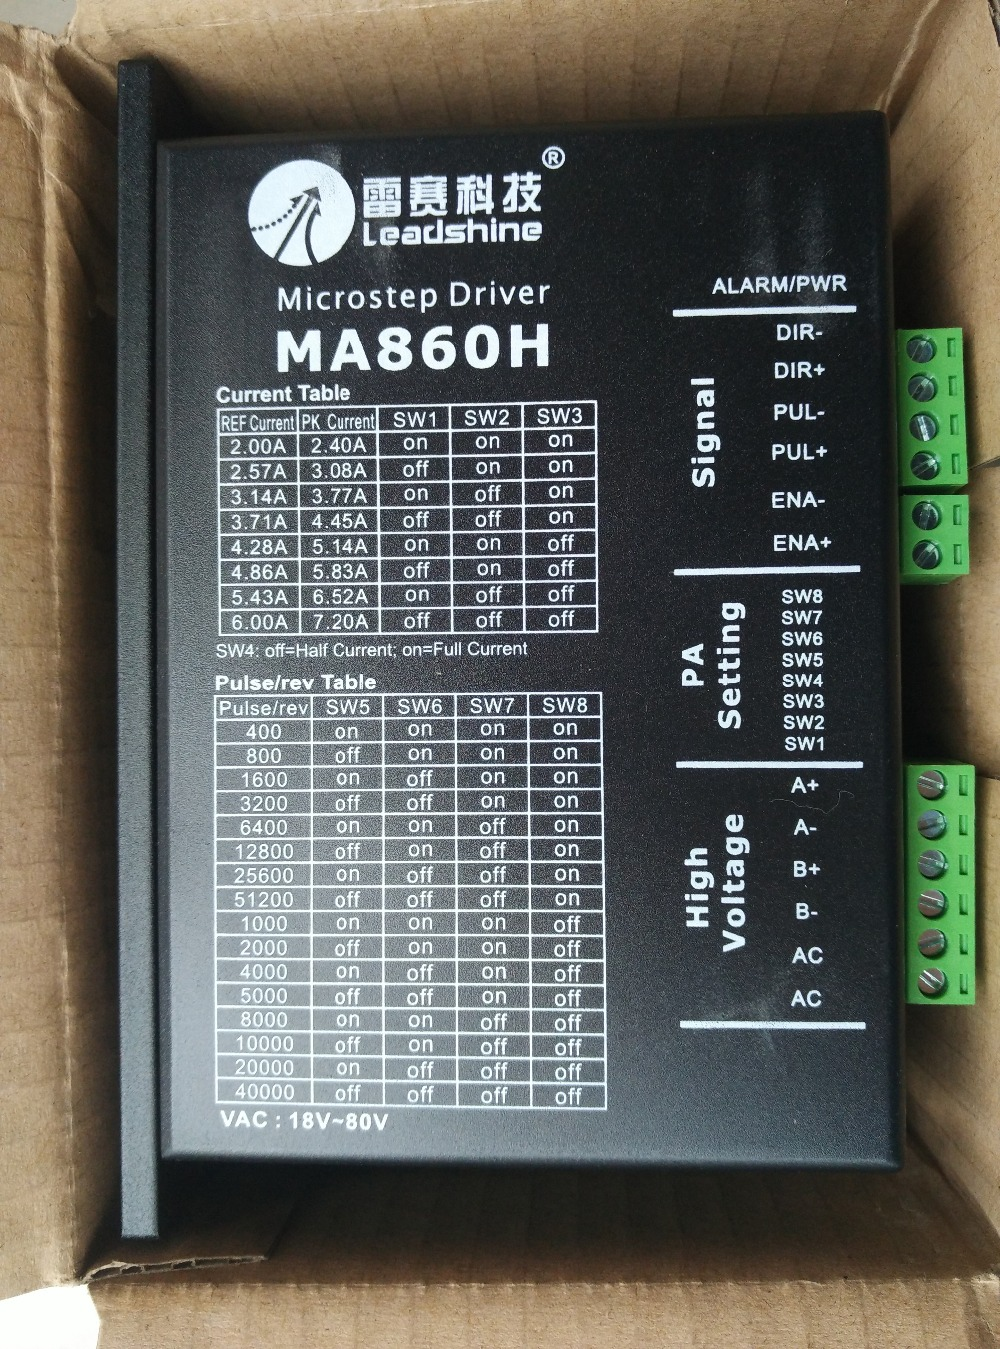 2 phase 7.2A AC18-80V MA860H Leadshine 256 Microstep driver  fit 57 86 110 motor germany delivery free vat 4pcs dm556d 50vdc 5 6a 256 microstep high performance digital stepping motor driver